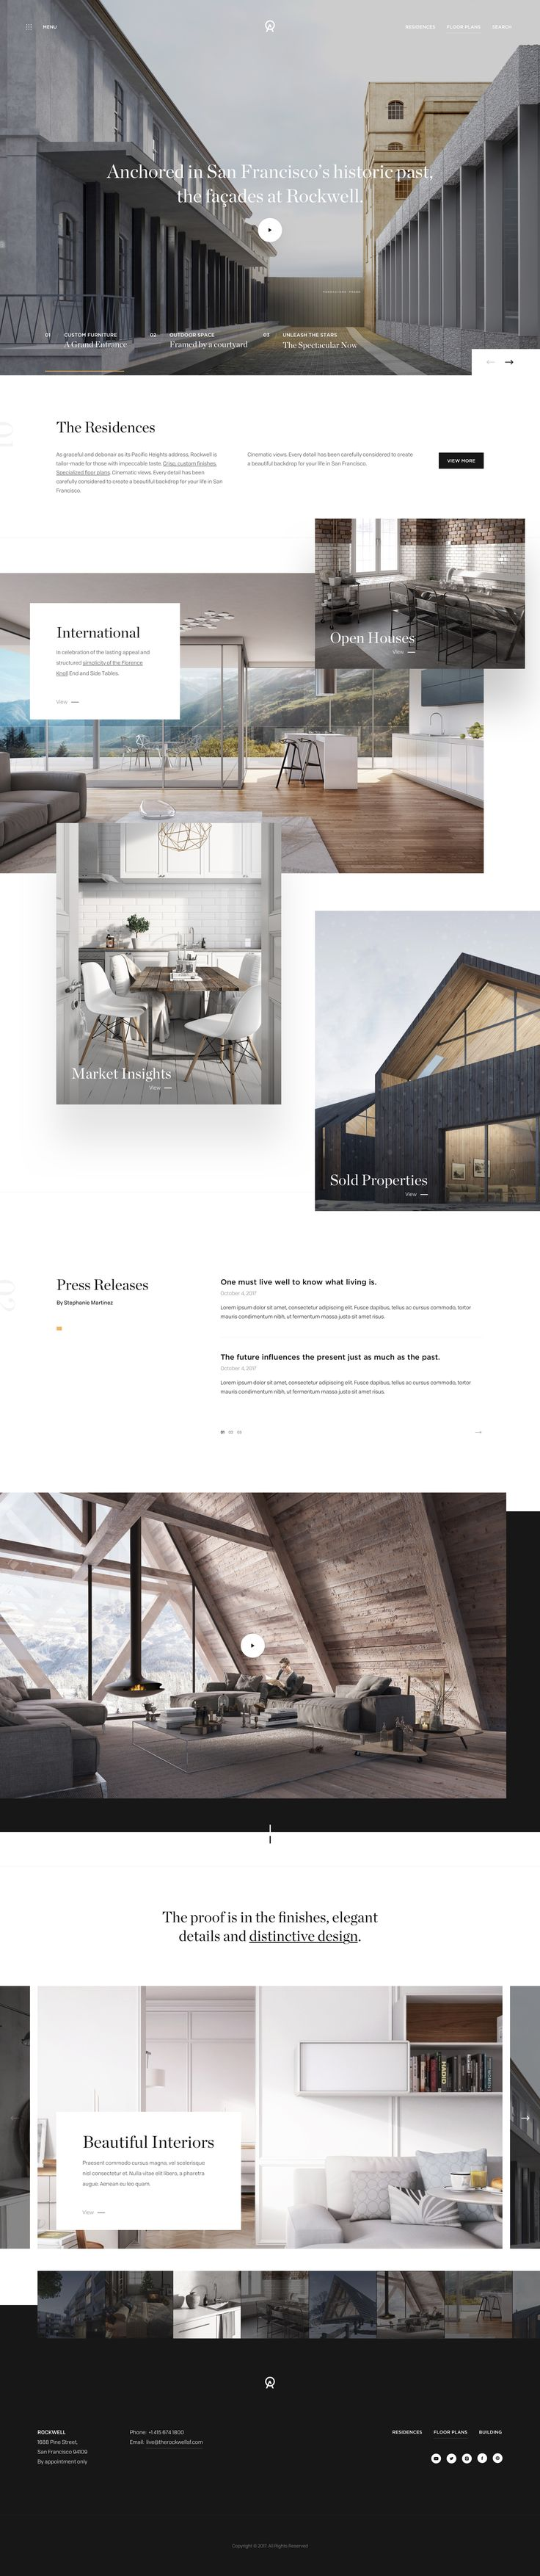 Architecture website design.